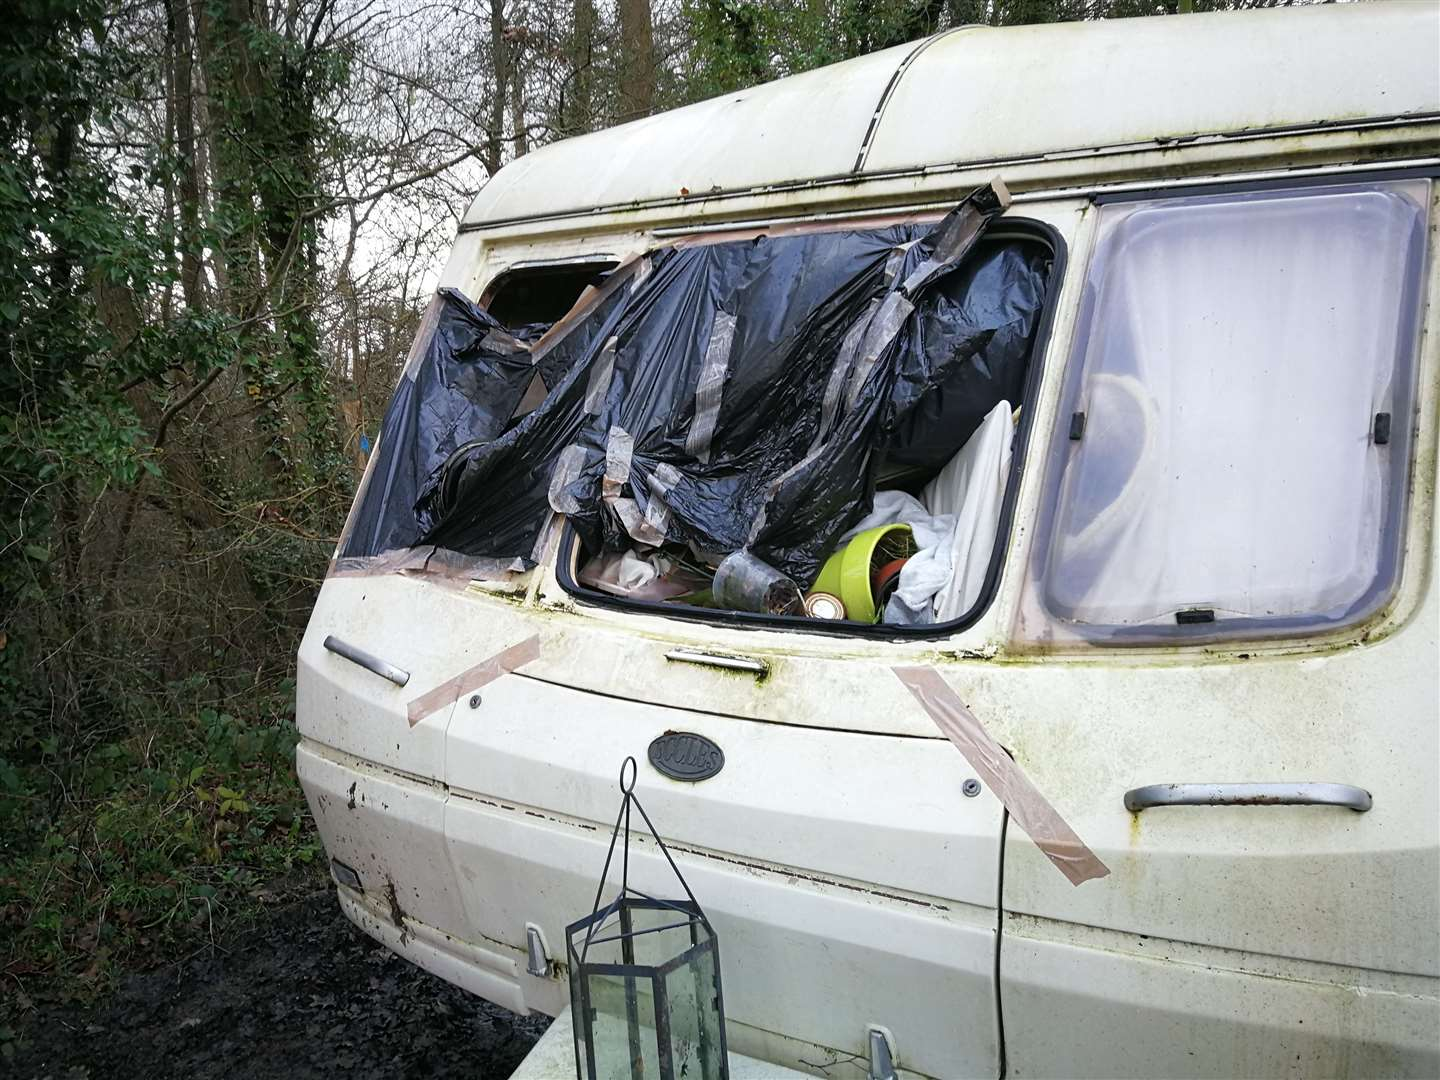 The caravan is stuffed full with rubbish